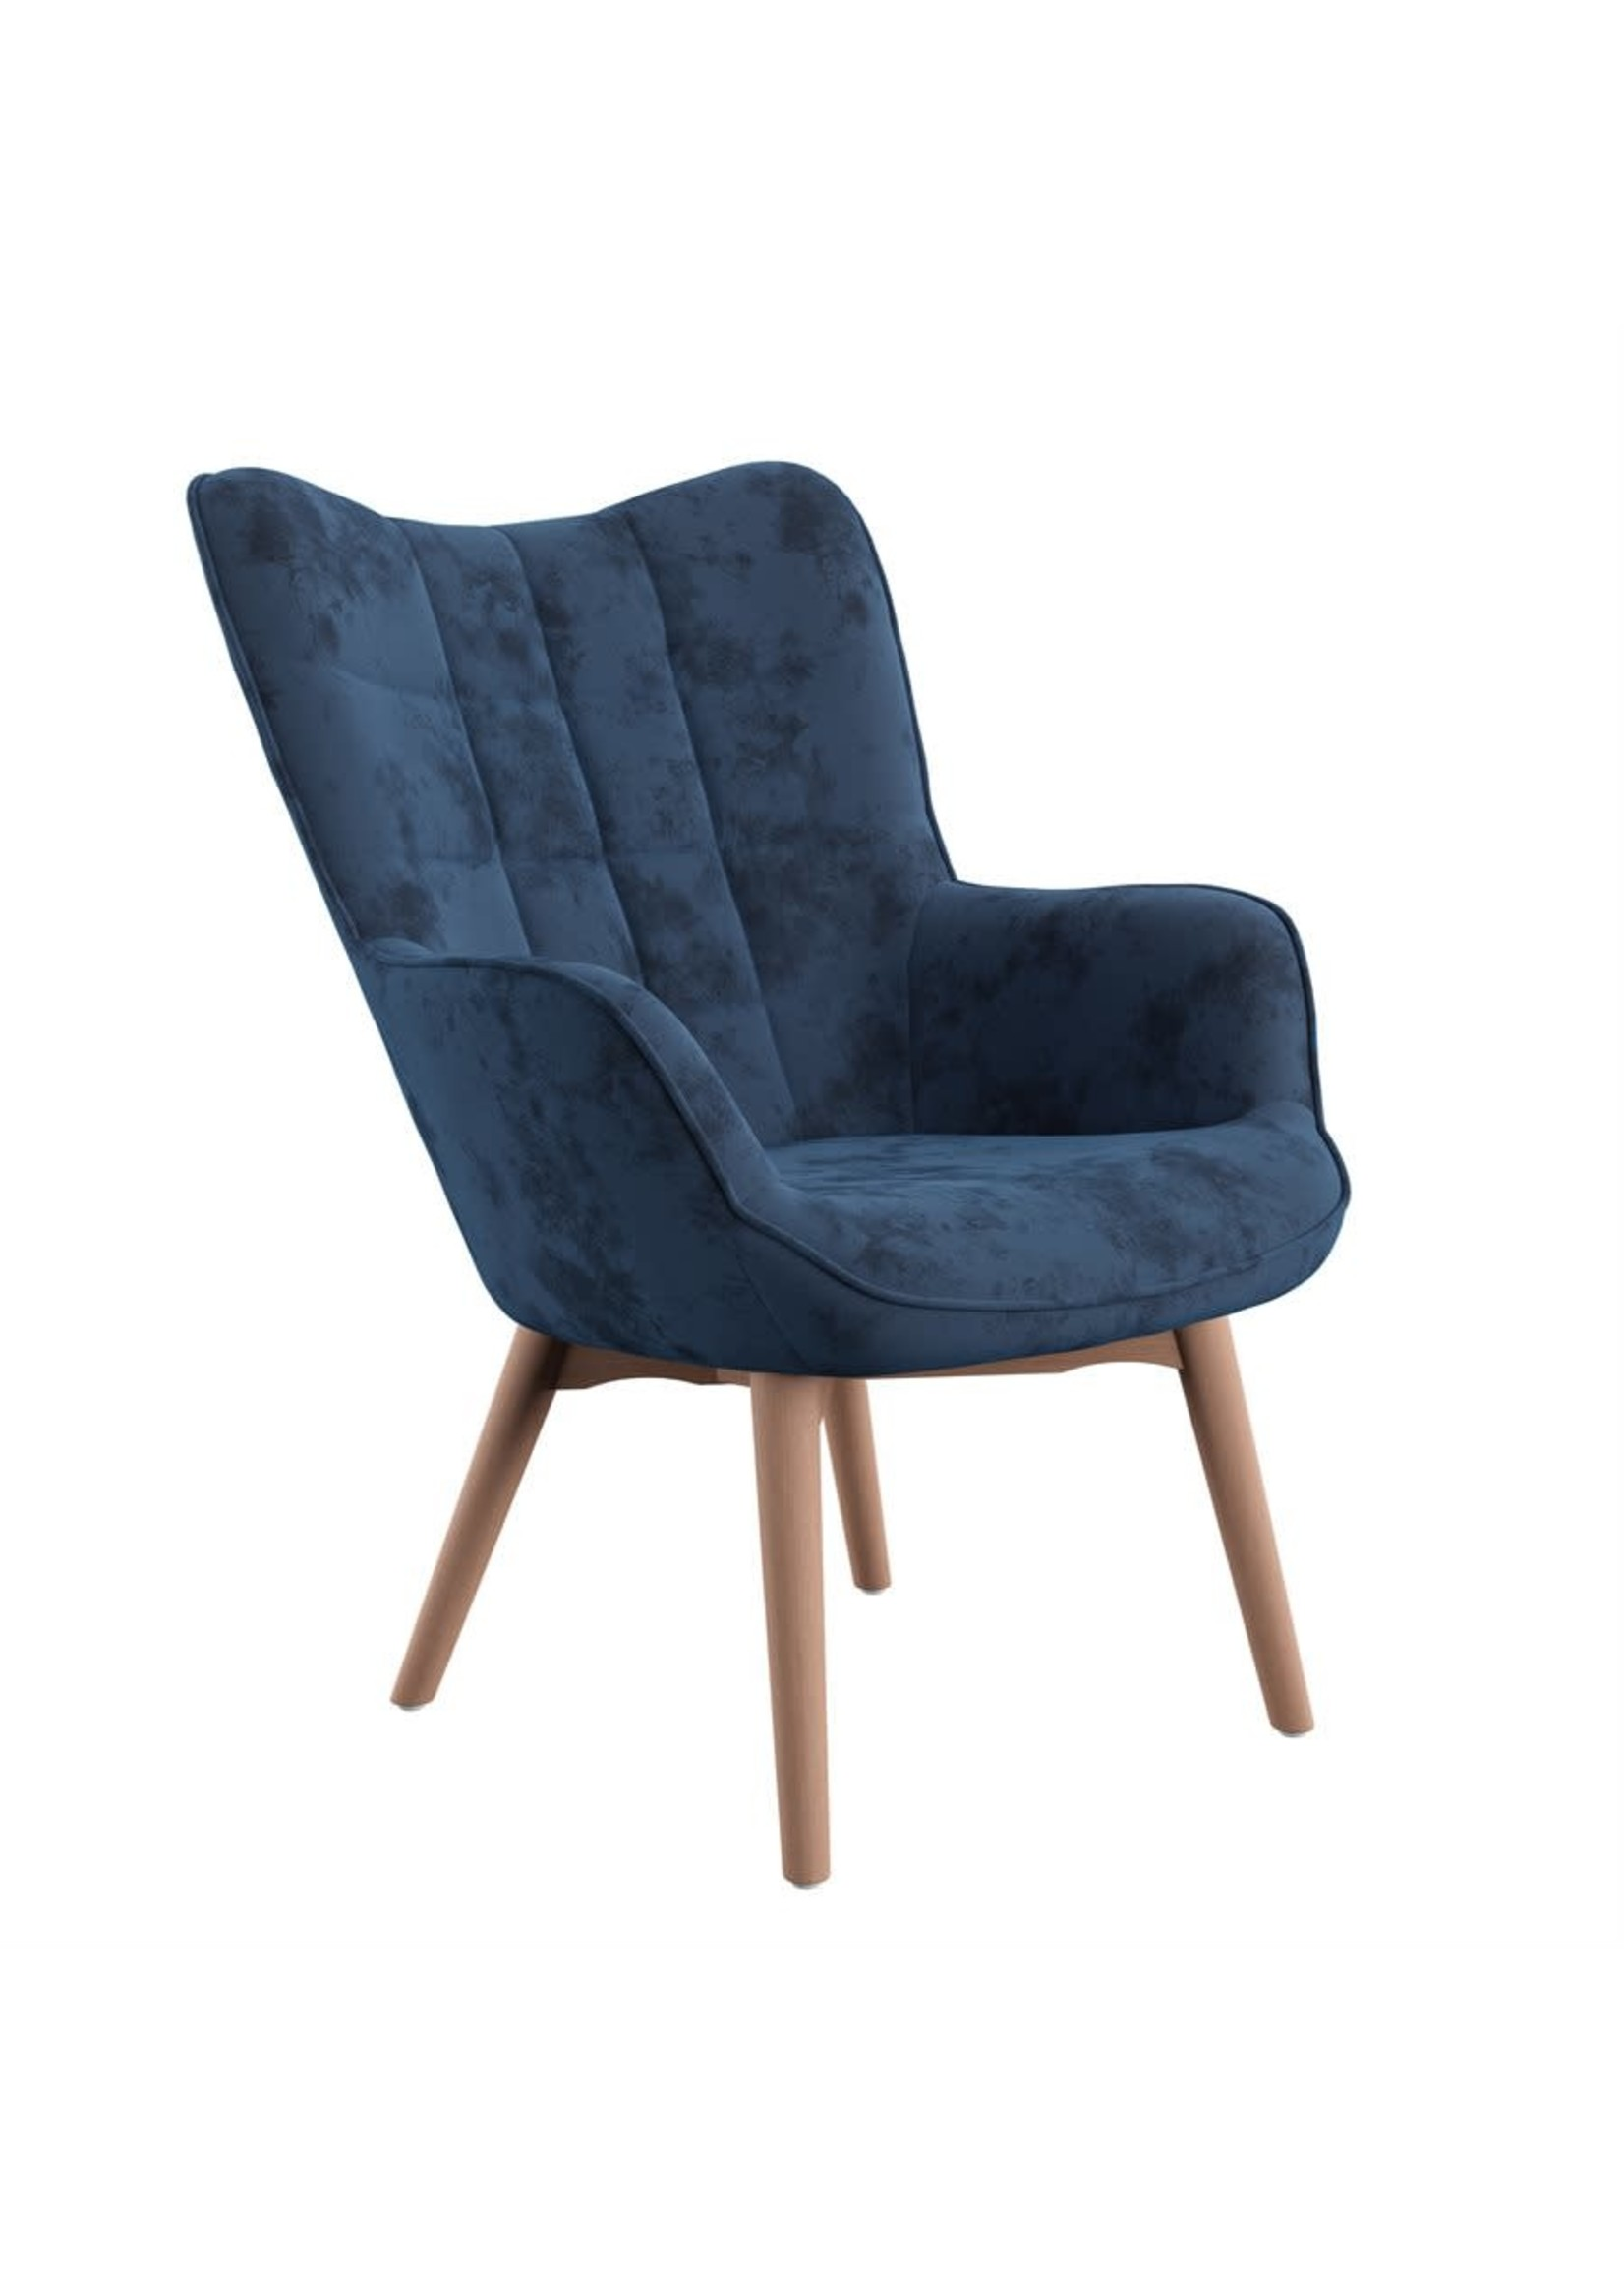 New Navy Accent Chair (EH U3328-05-14)